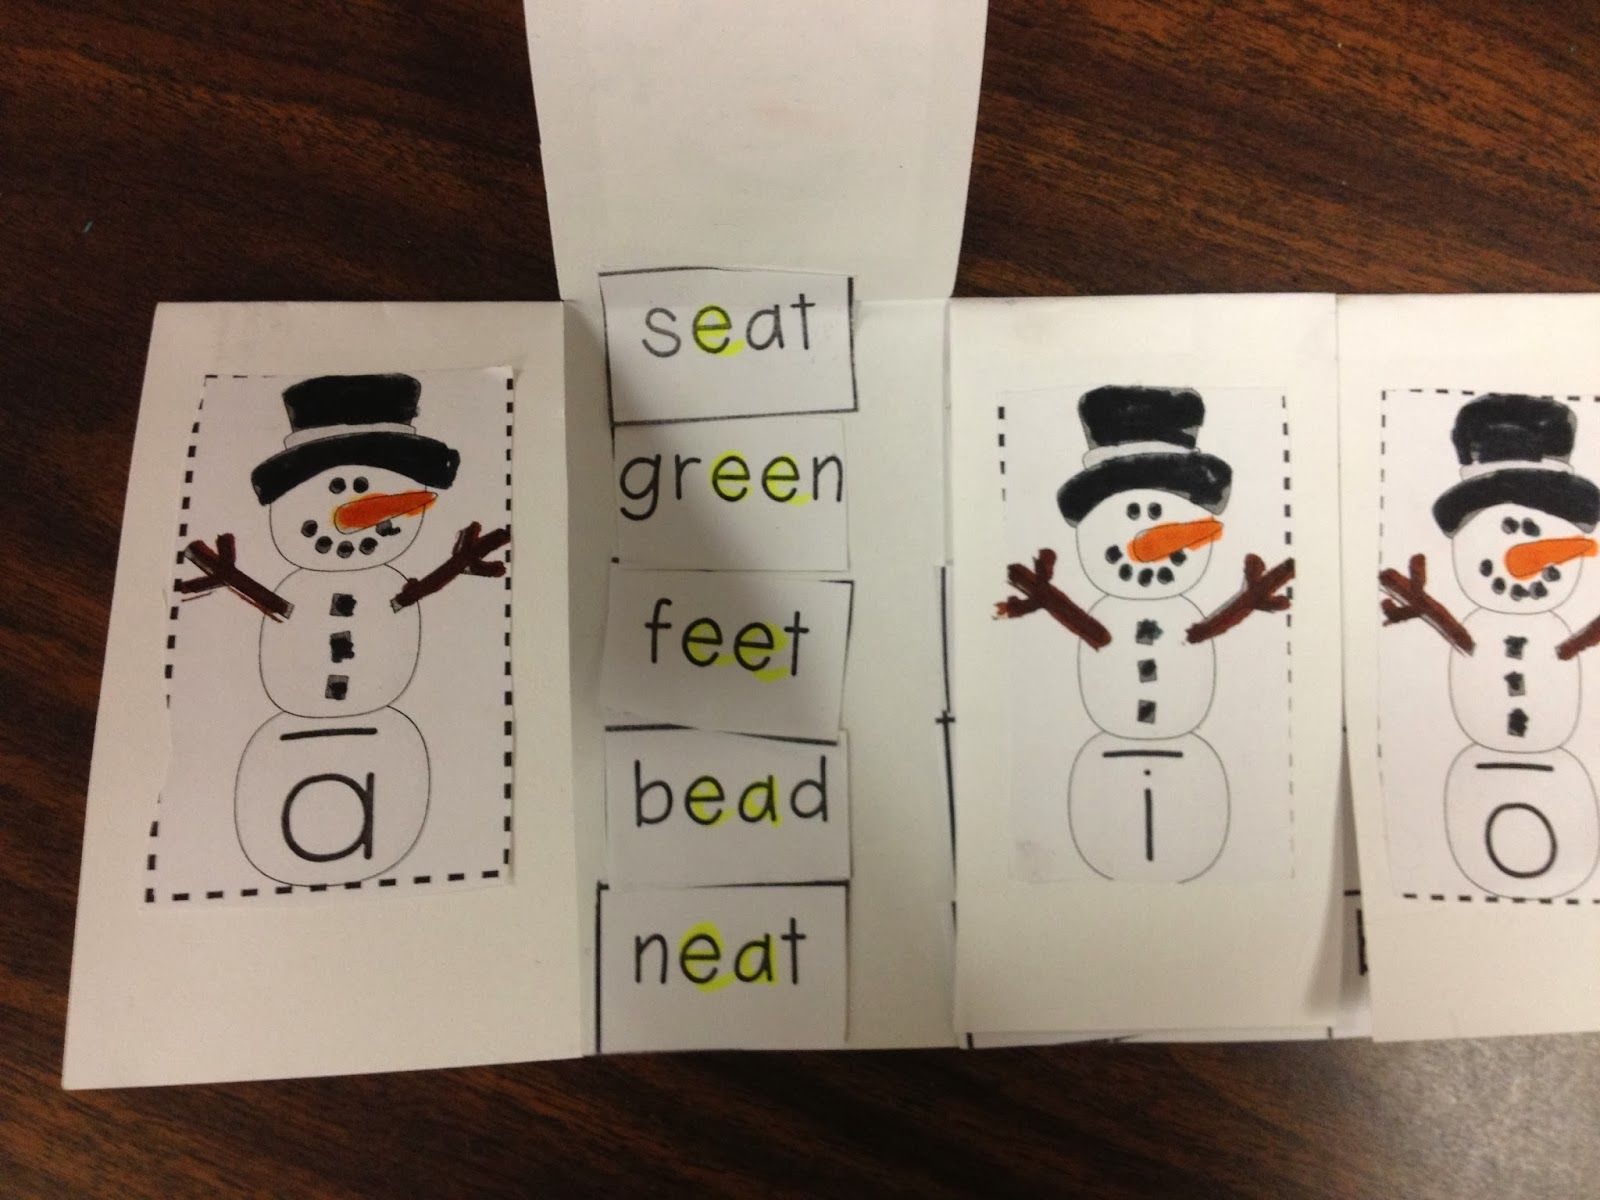 Students Sort The Words By Long Vowel Sound Highlight The Vowel Team Or Silent E Vowel Pattern